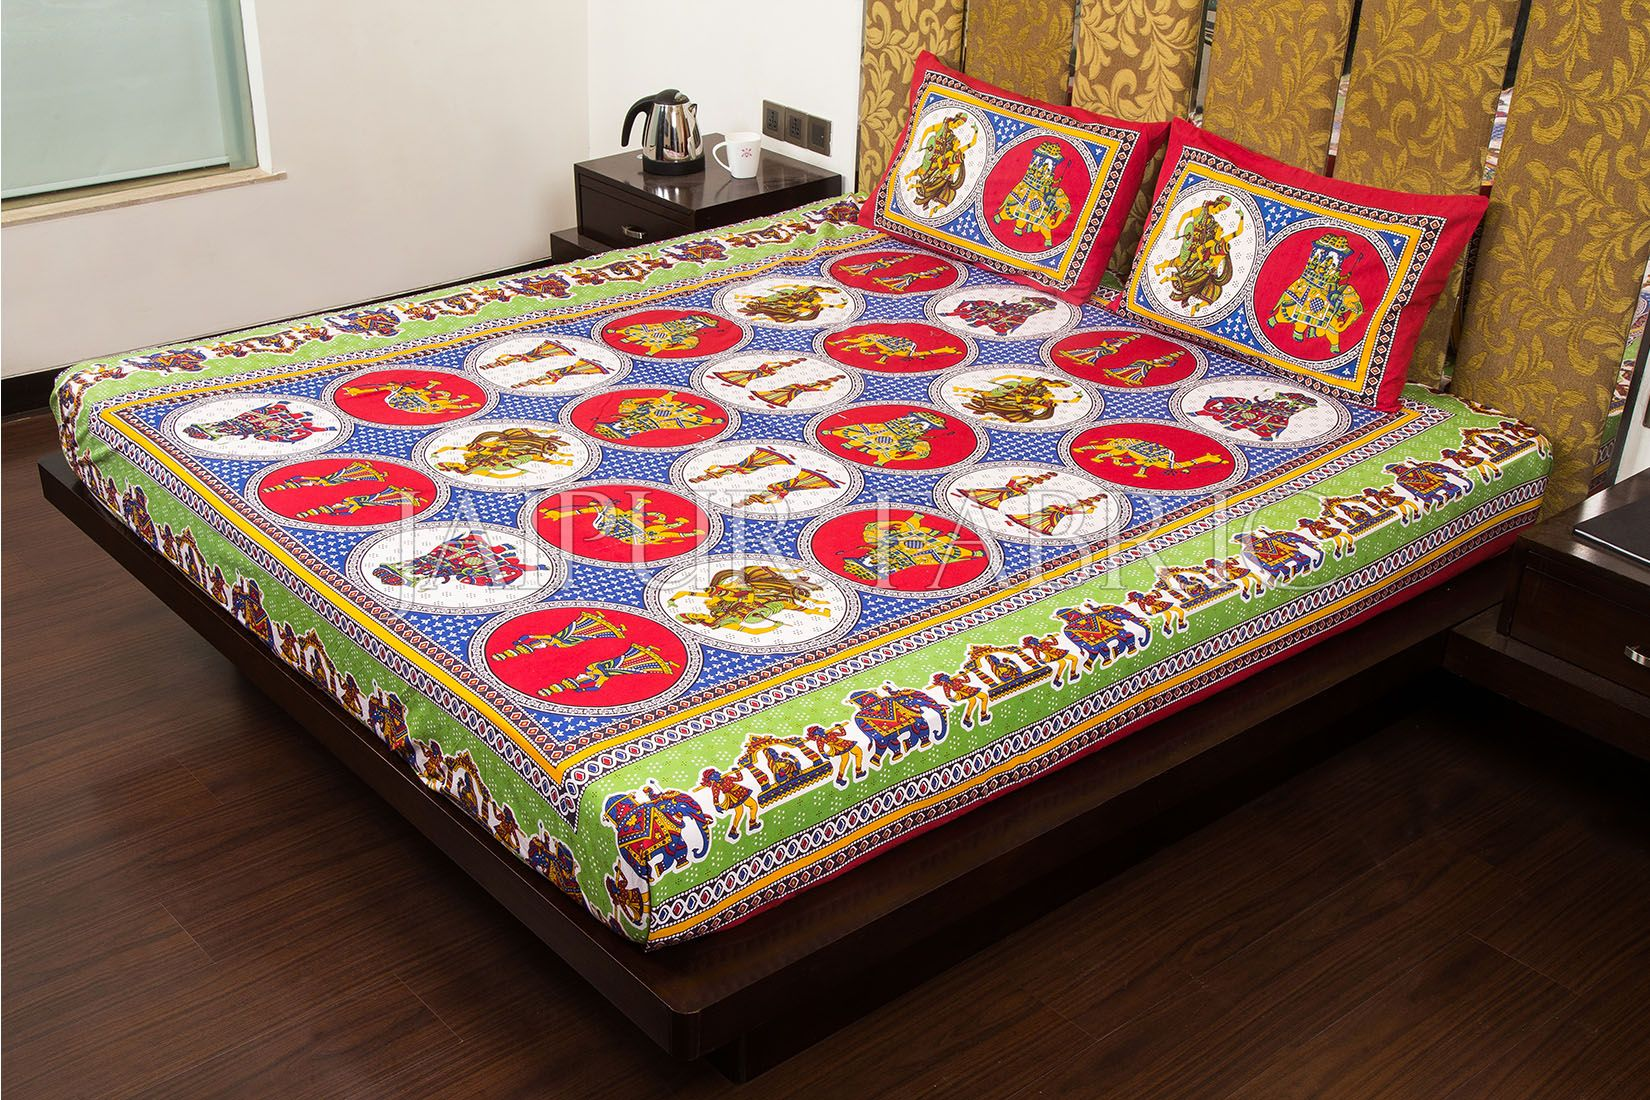 Red Border Jaipri Fat Wedding Print Cotton Double Bed Sheet